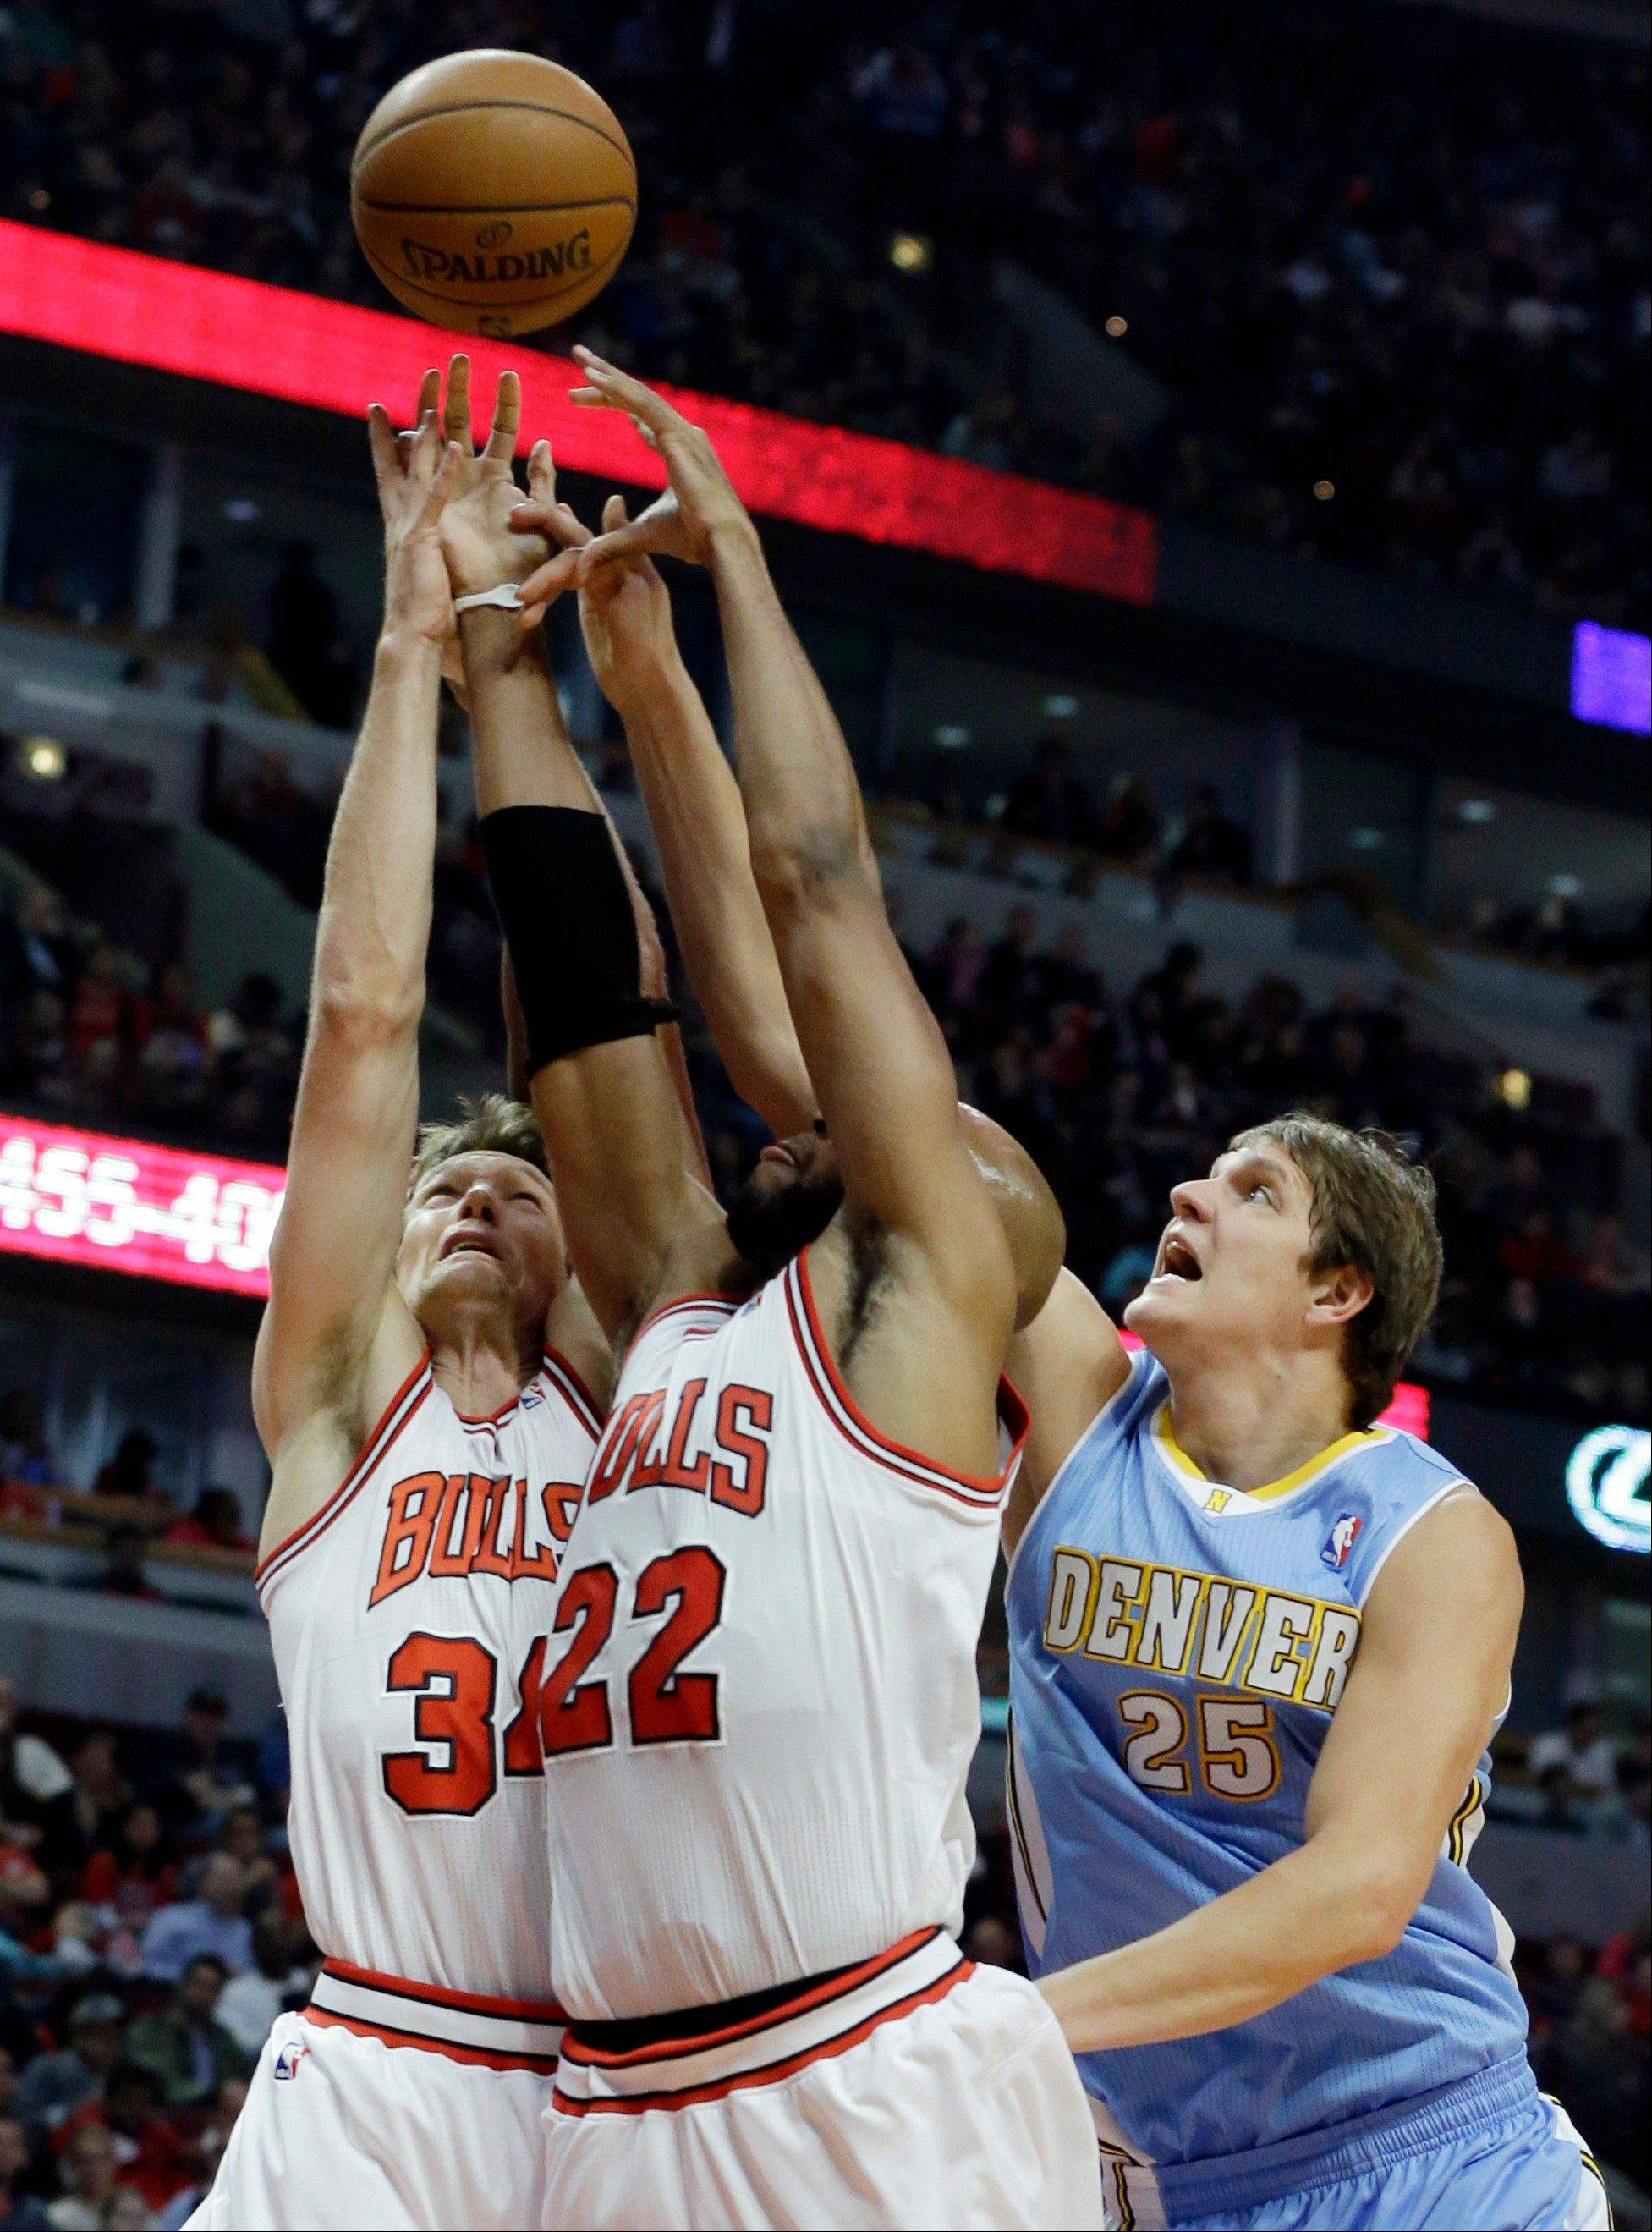 Denver Nuggets center Timofey Mozgov (25) battle for a rebound against Chicago Bulls guard Mike Dunleavy, left, and Taj Gibson during the first half of an NBA preseason basketball game in Chicago on Friday, Oct. 25, 2013. (AP Photo/Nam Y. Huh)